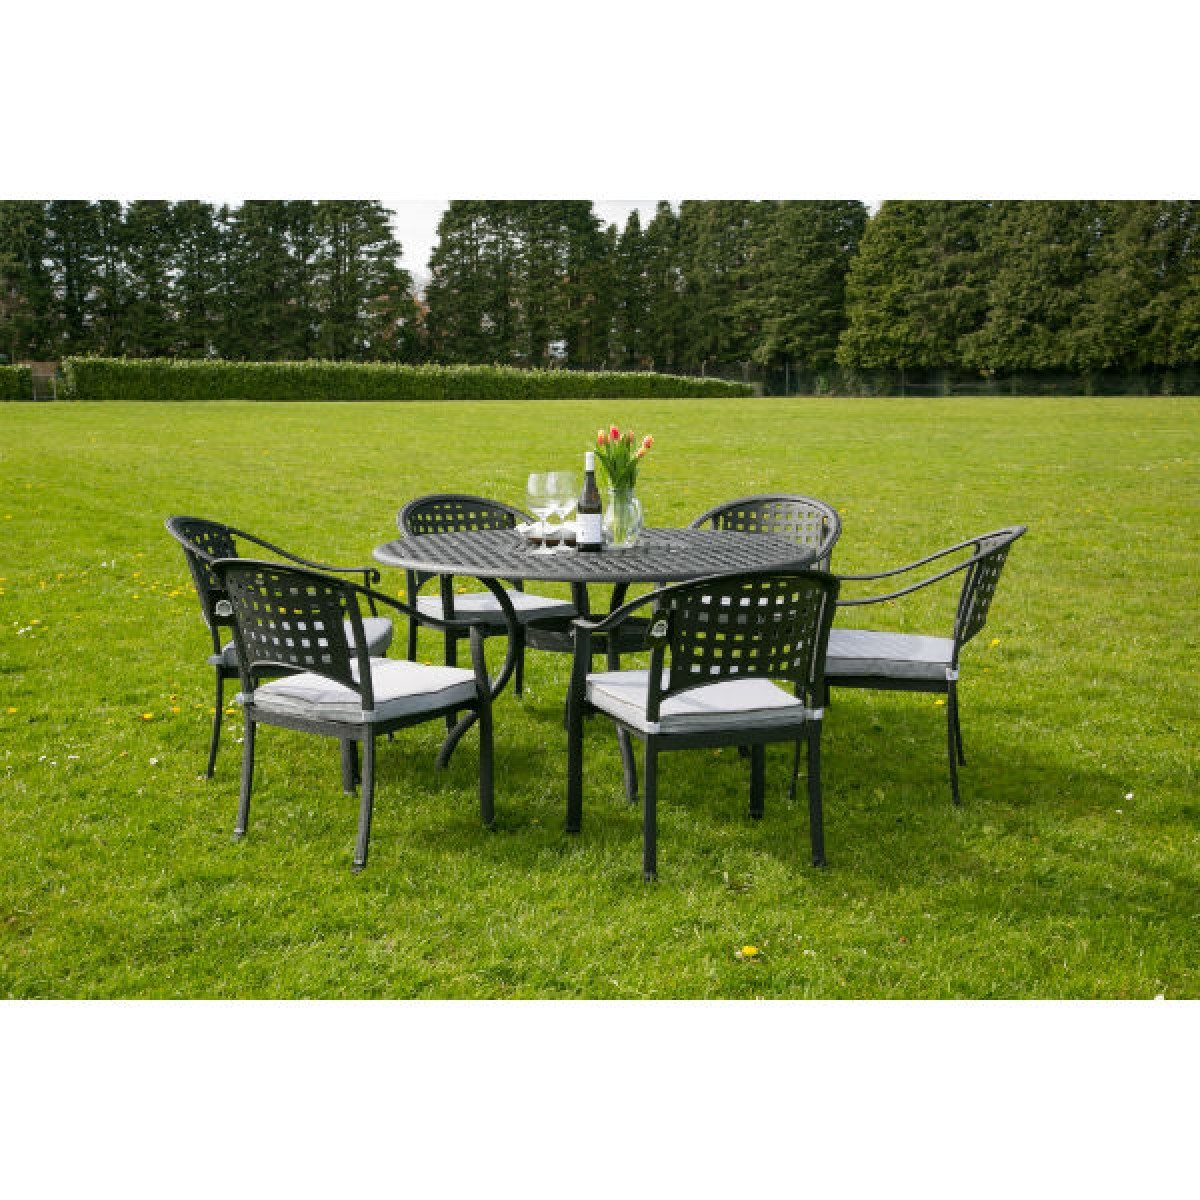 chelmsford 6 seater cast aluminium garden furniture set - Garden Furniture 6 Seater